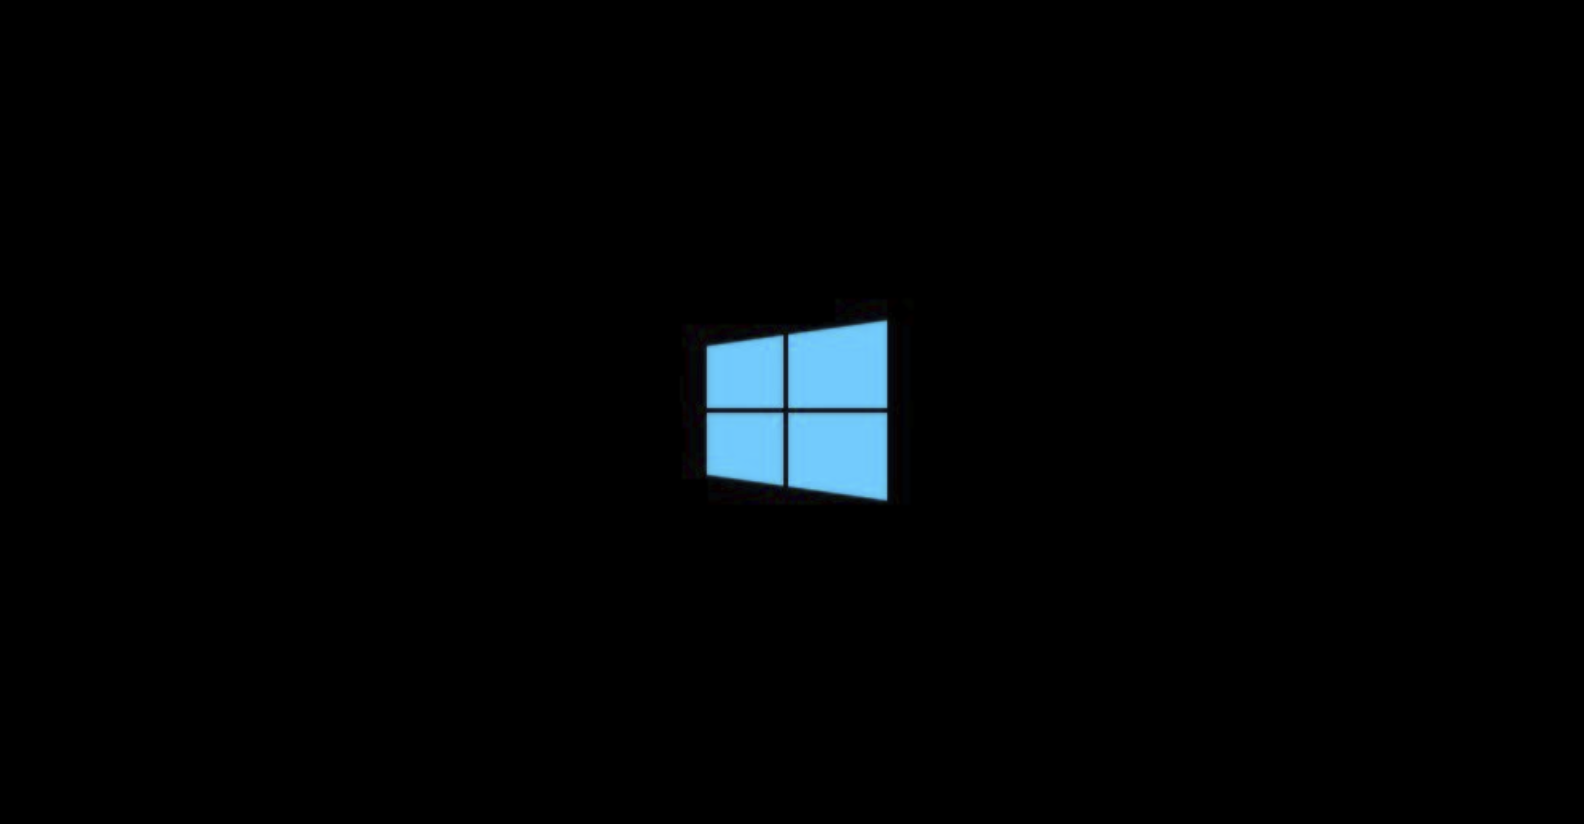 As soon as the Windows logo appears on the screen, press the power button repeatedly to interrupt the boot sequence until the device boots into the recovery experience. Alternatively, you can press the F11 key as soon as the computer powers on to get to the Advanced Startup Options menu.